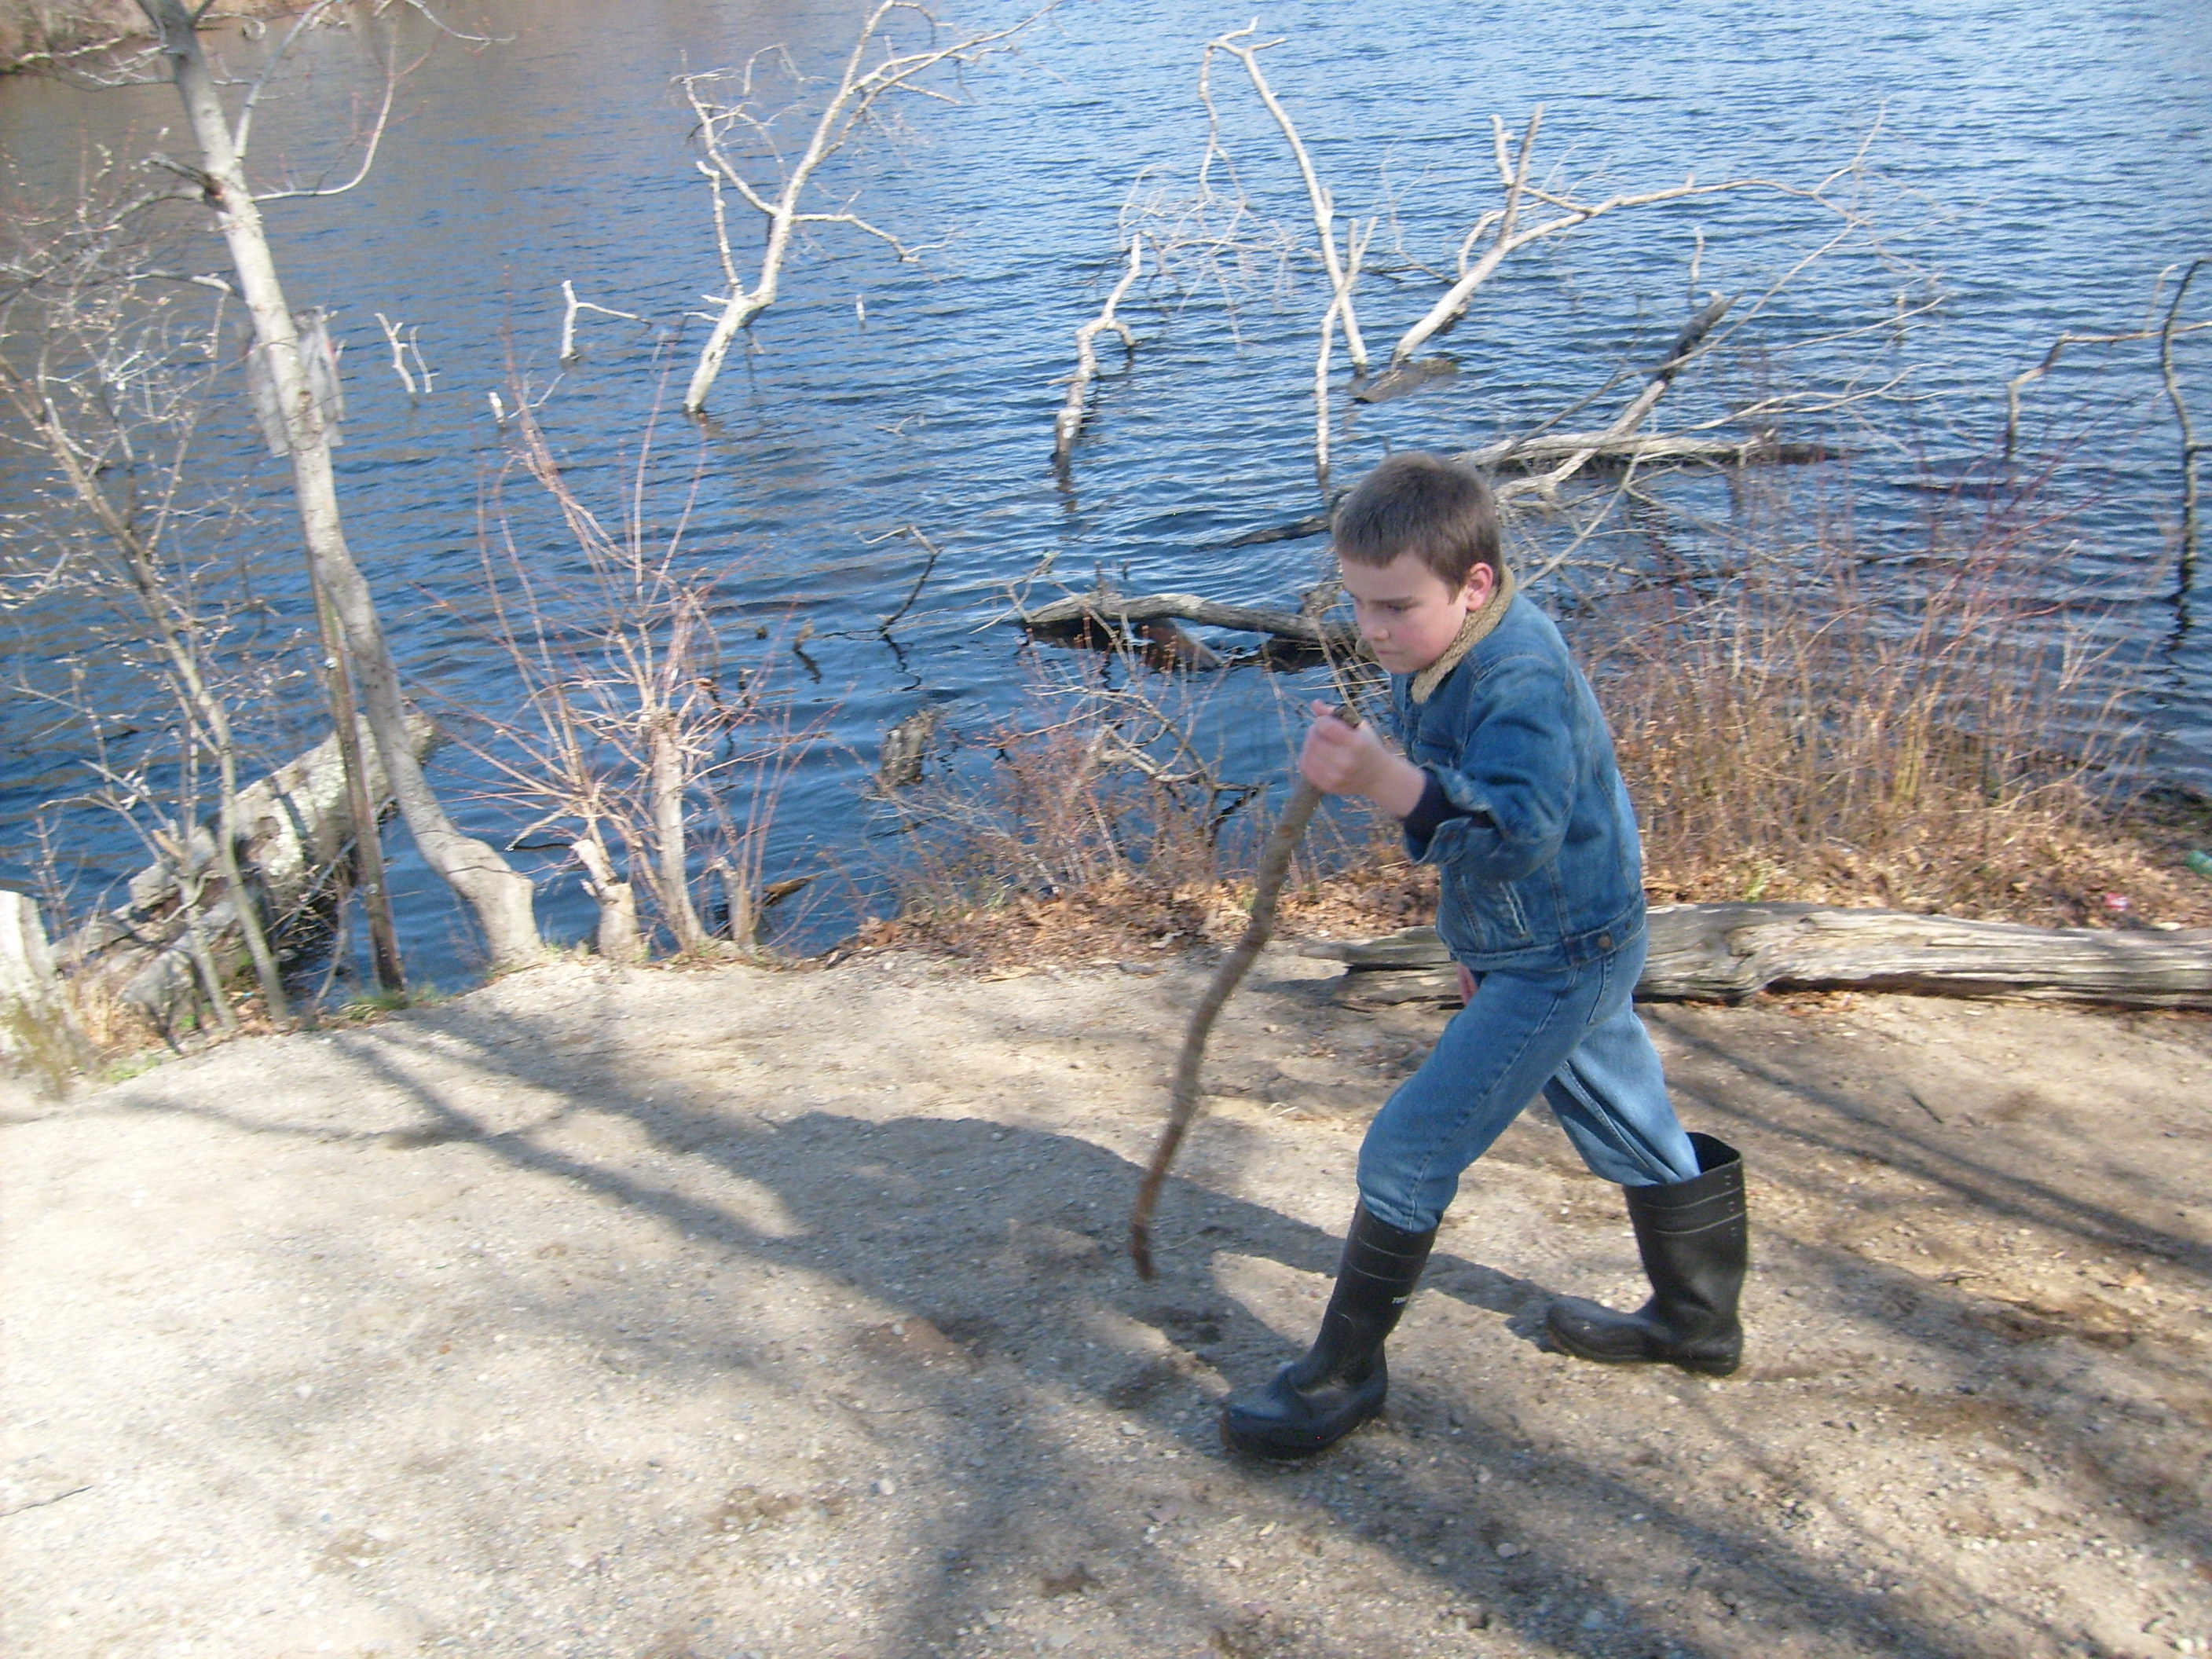 M at Mechanic's Pont (with walking stick)